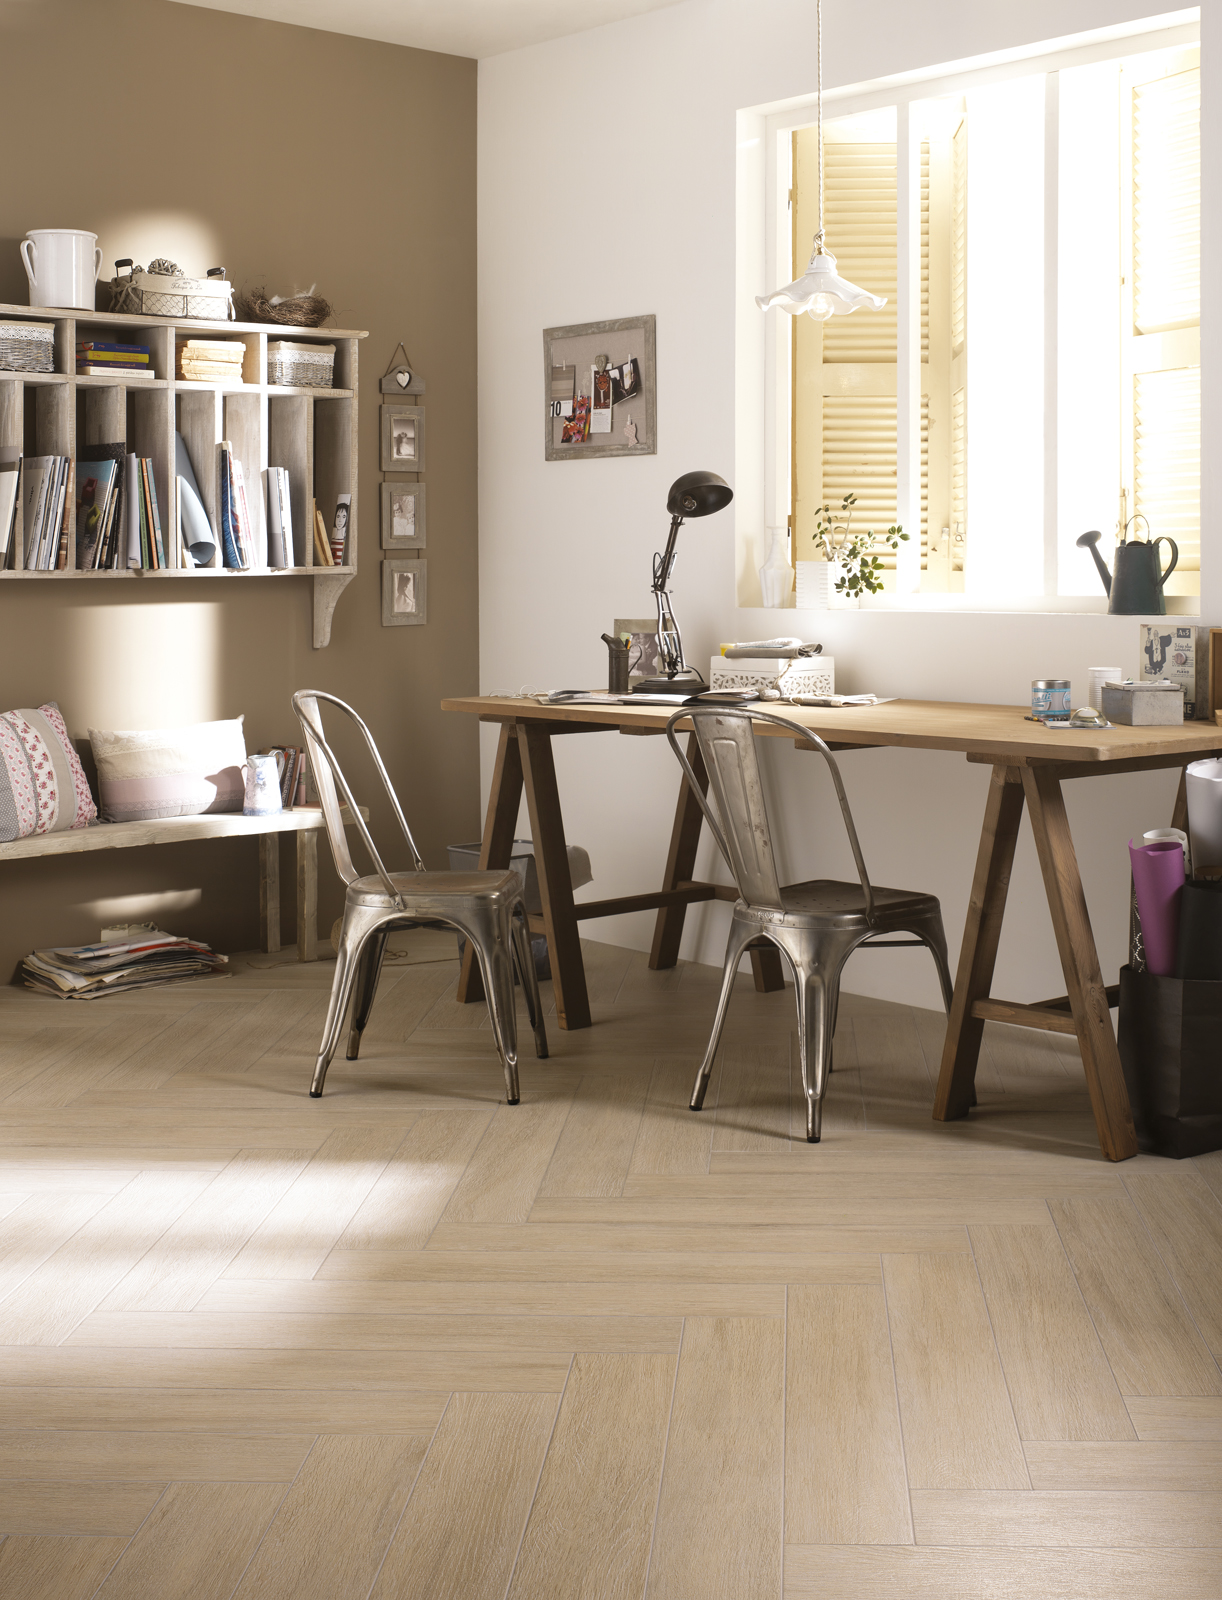 Planet wood effect stoneware marazzi for Wohnzimmer taupe